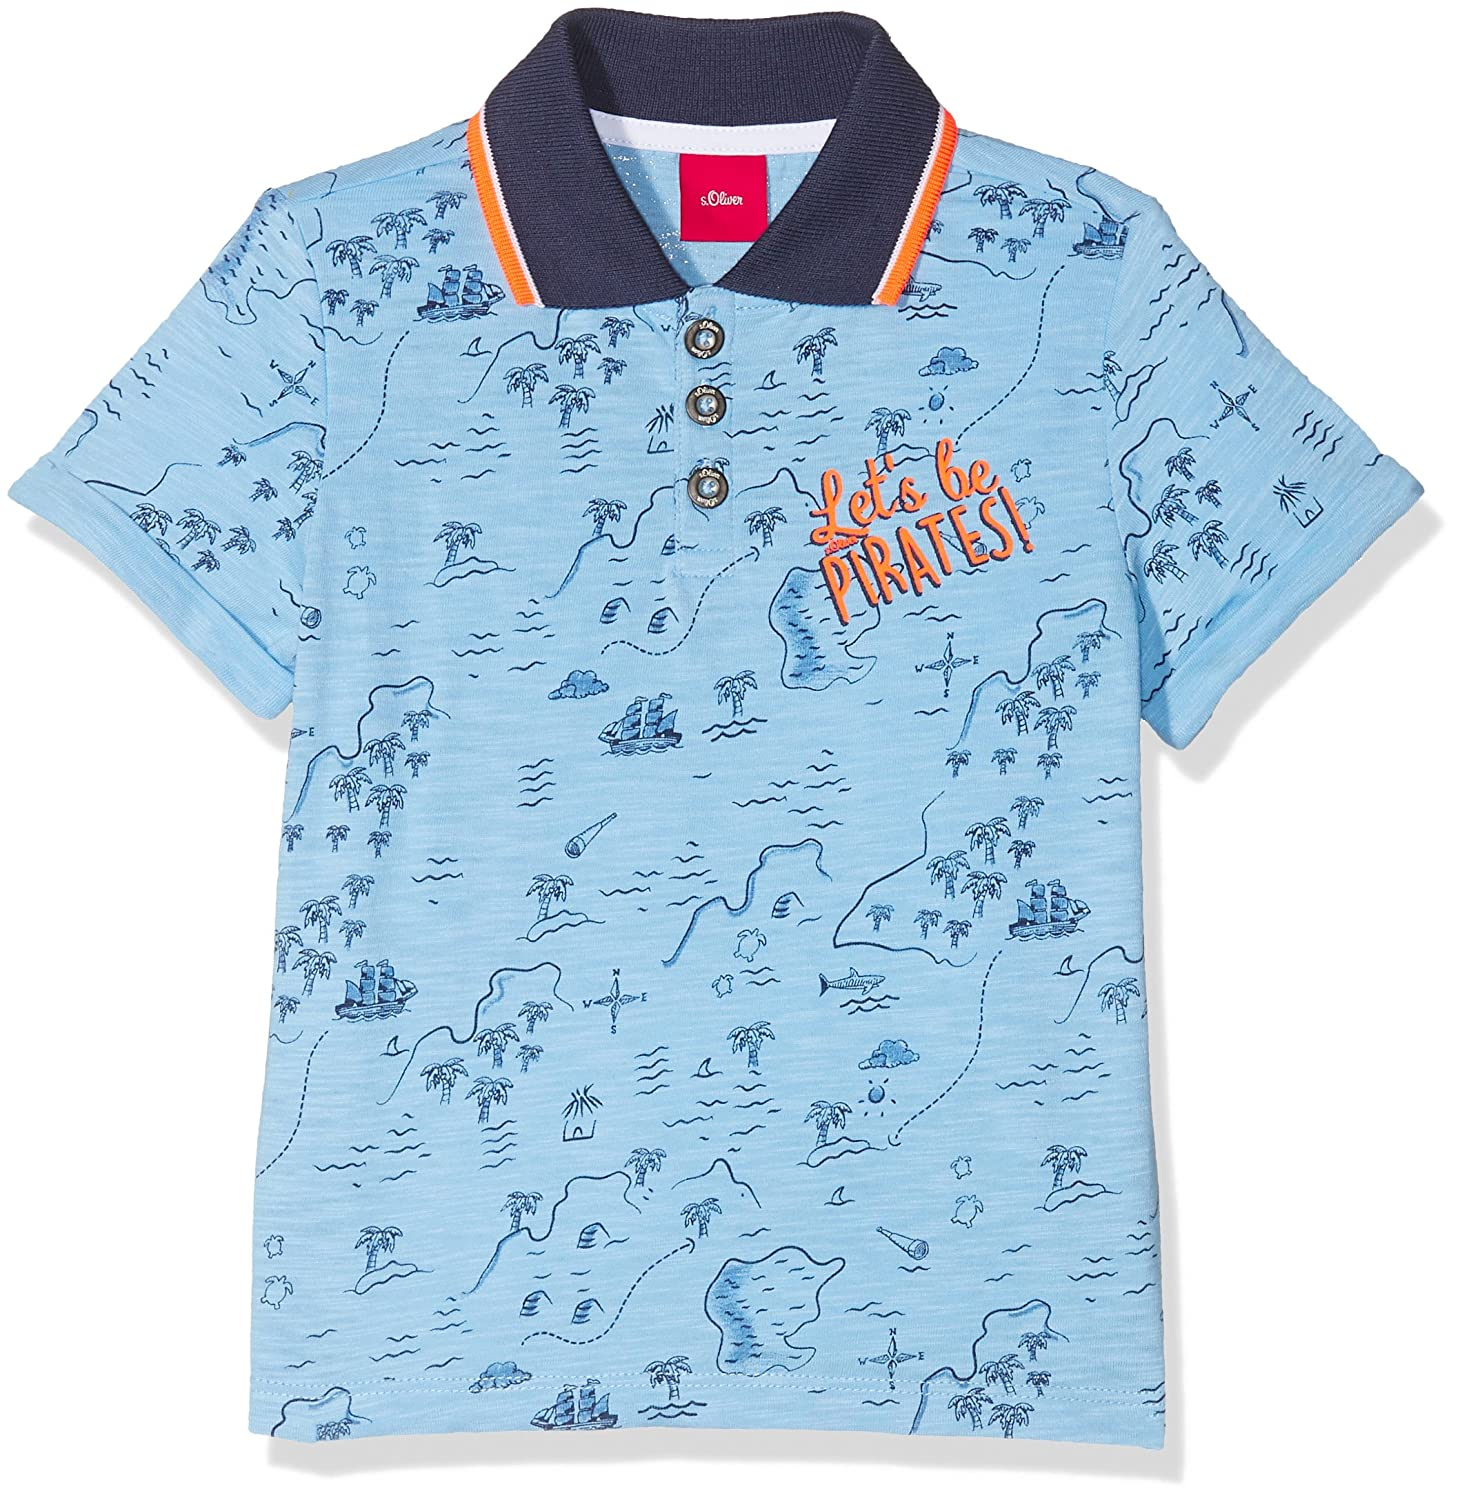 s.Oliver Baby Boys' Polo Shirt 65.804.35.5144